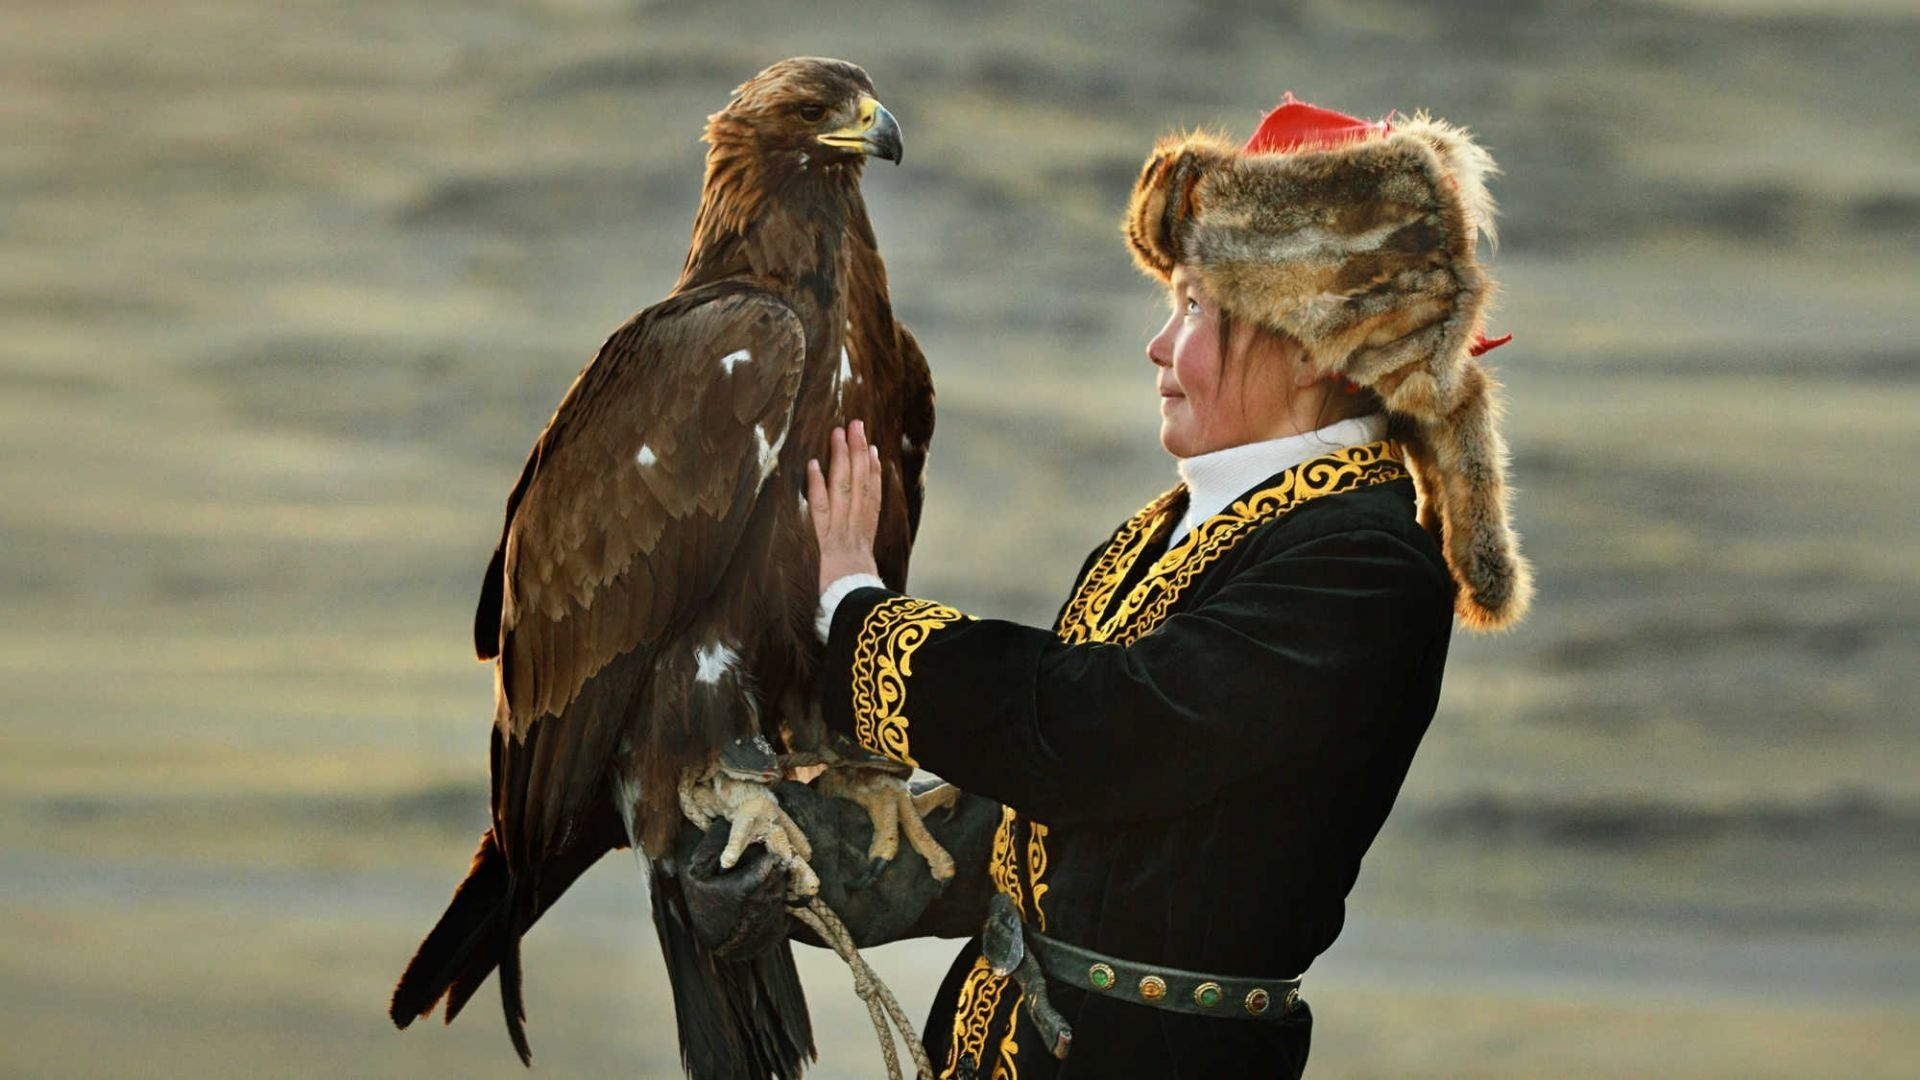 travelling__country_and_the_eagle_huntress.jpg